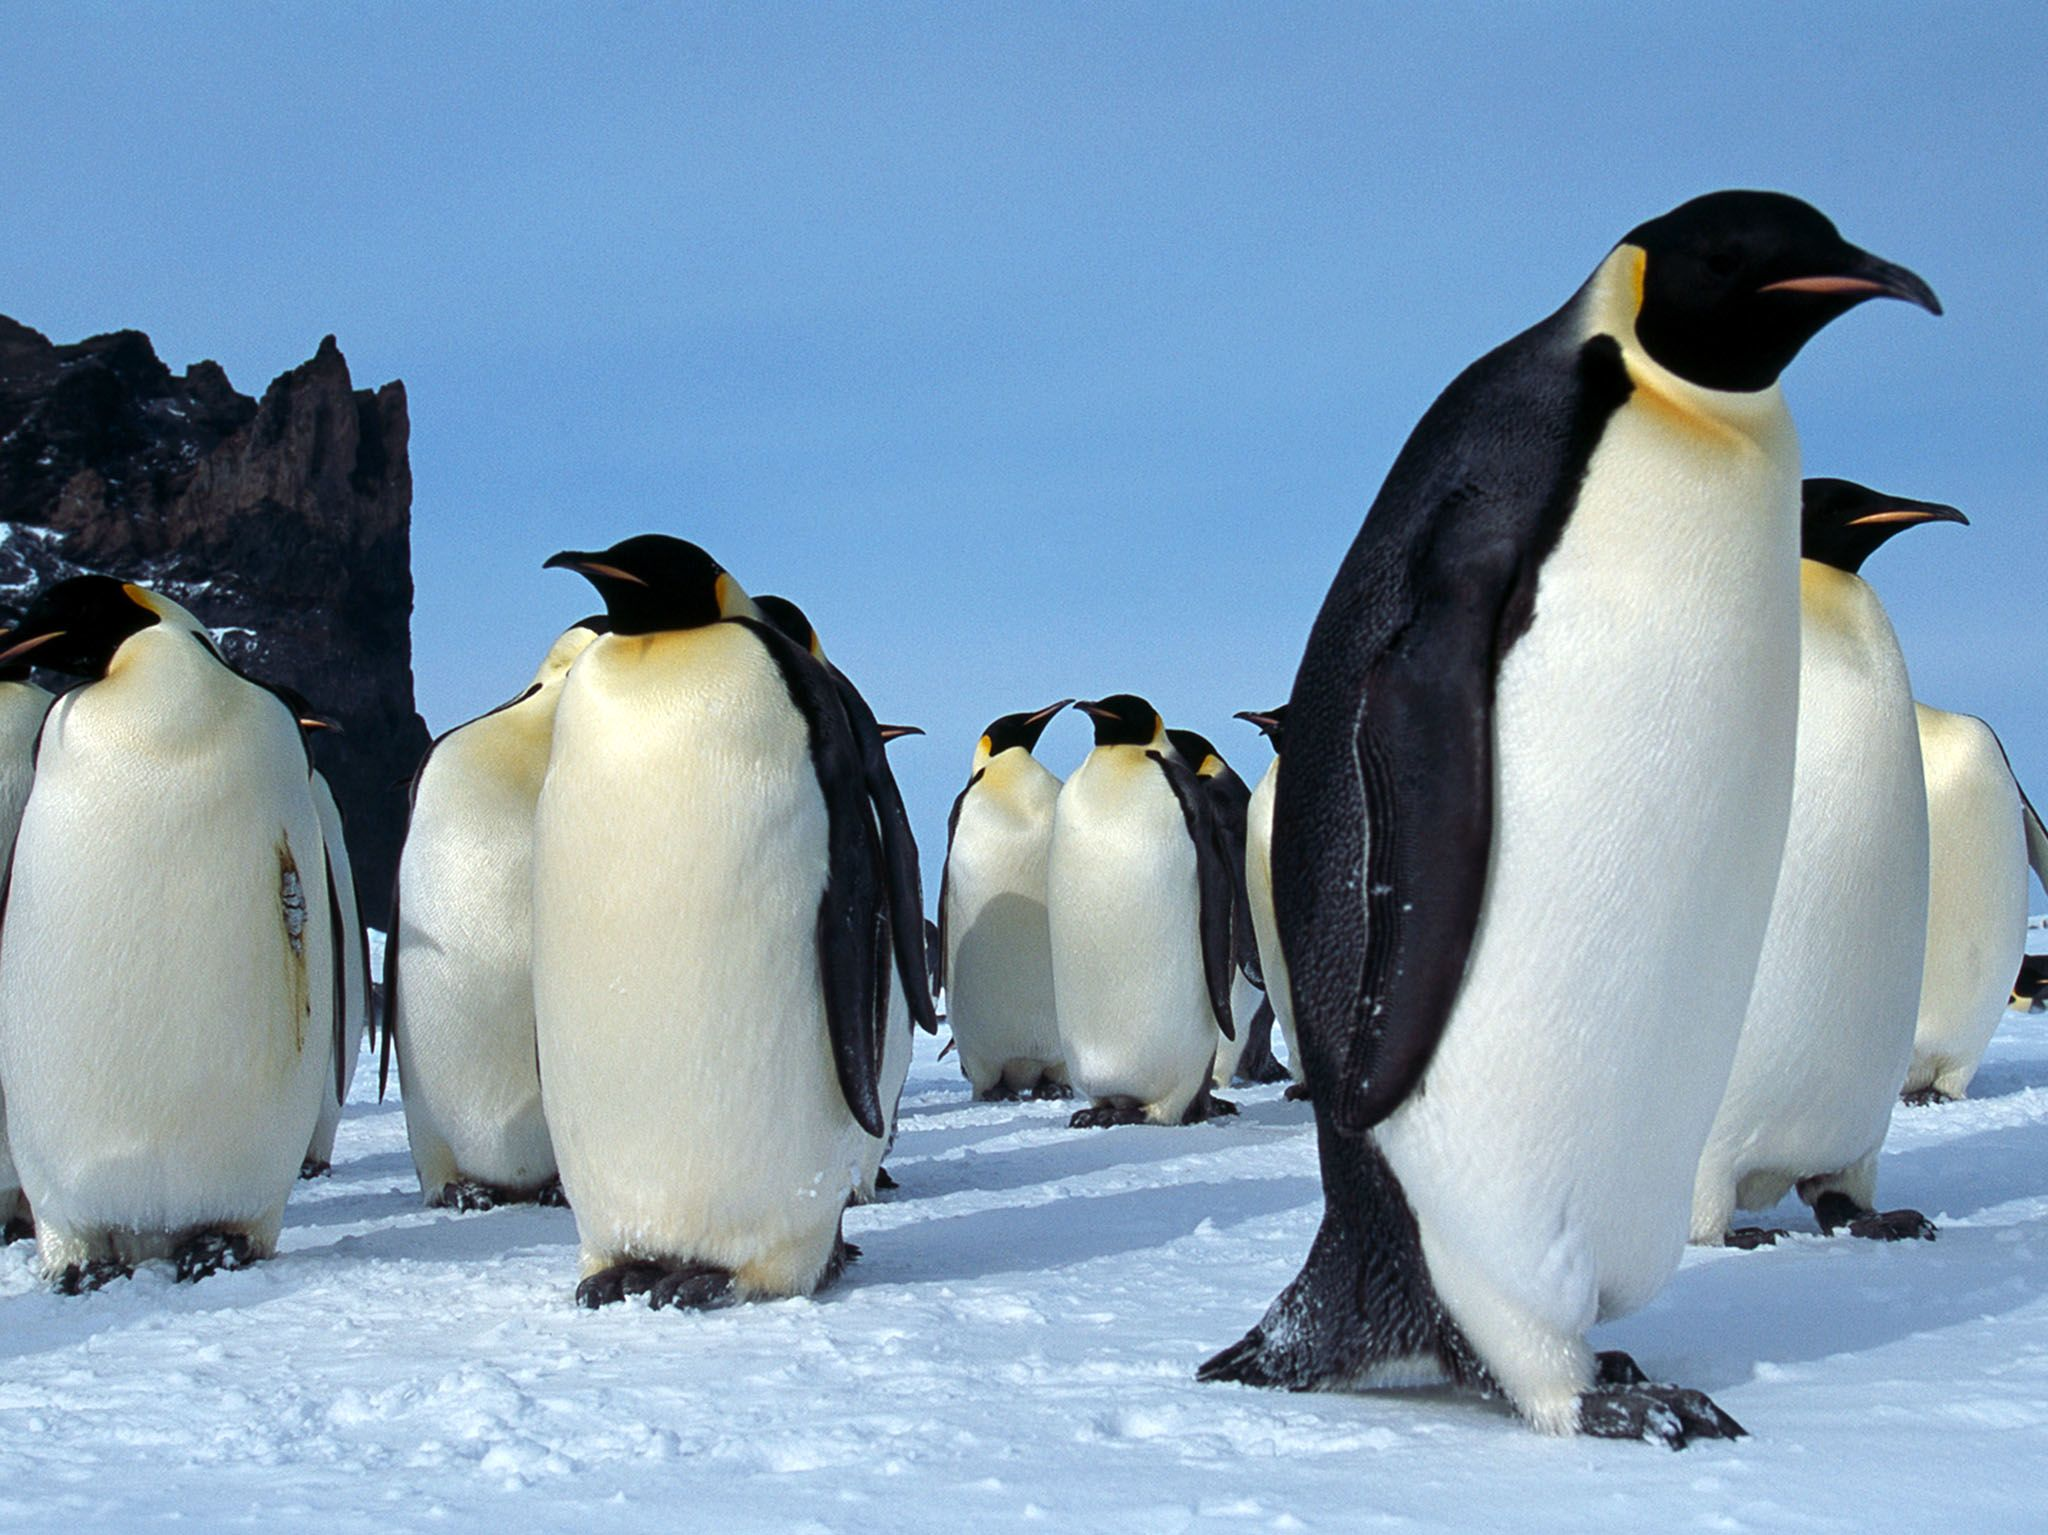 Cape Washington, Antarctica: A group of adult emperor penguins stand together on the ice in Cape... [Photo of the day - آوریل 2017]